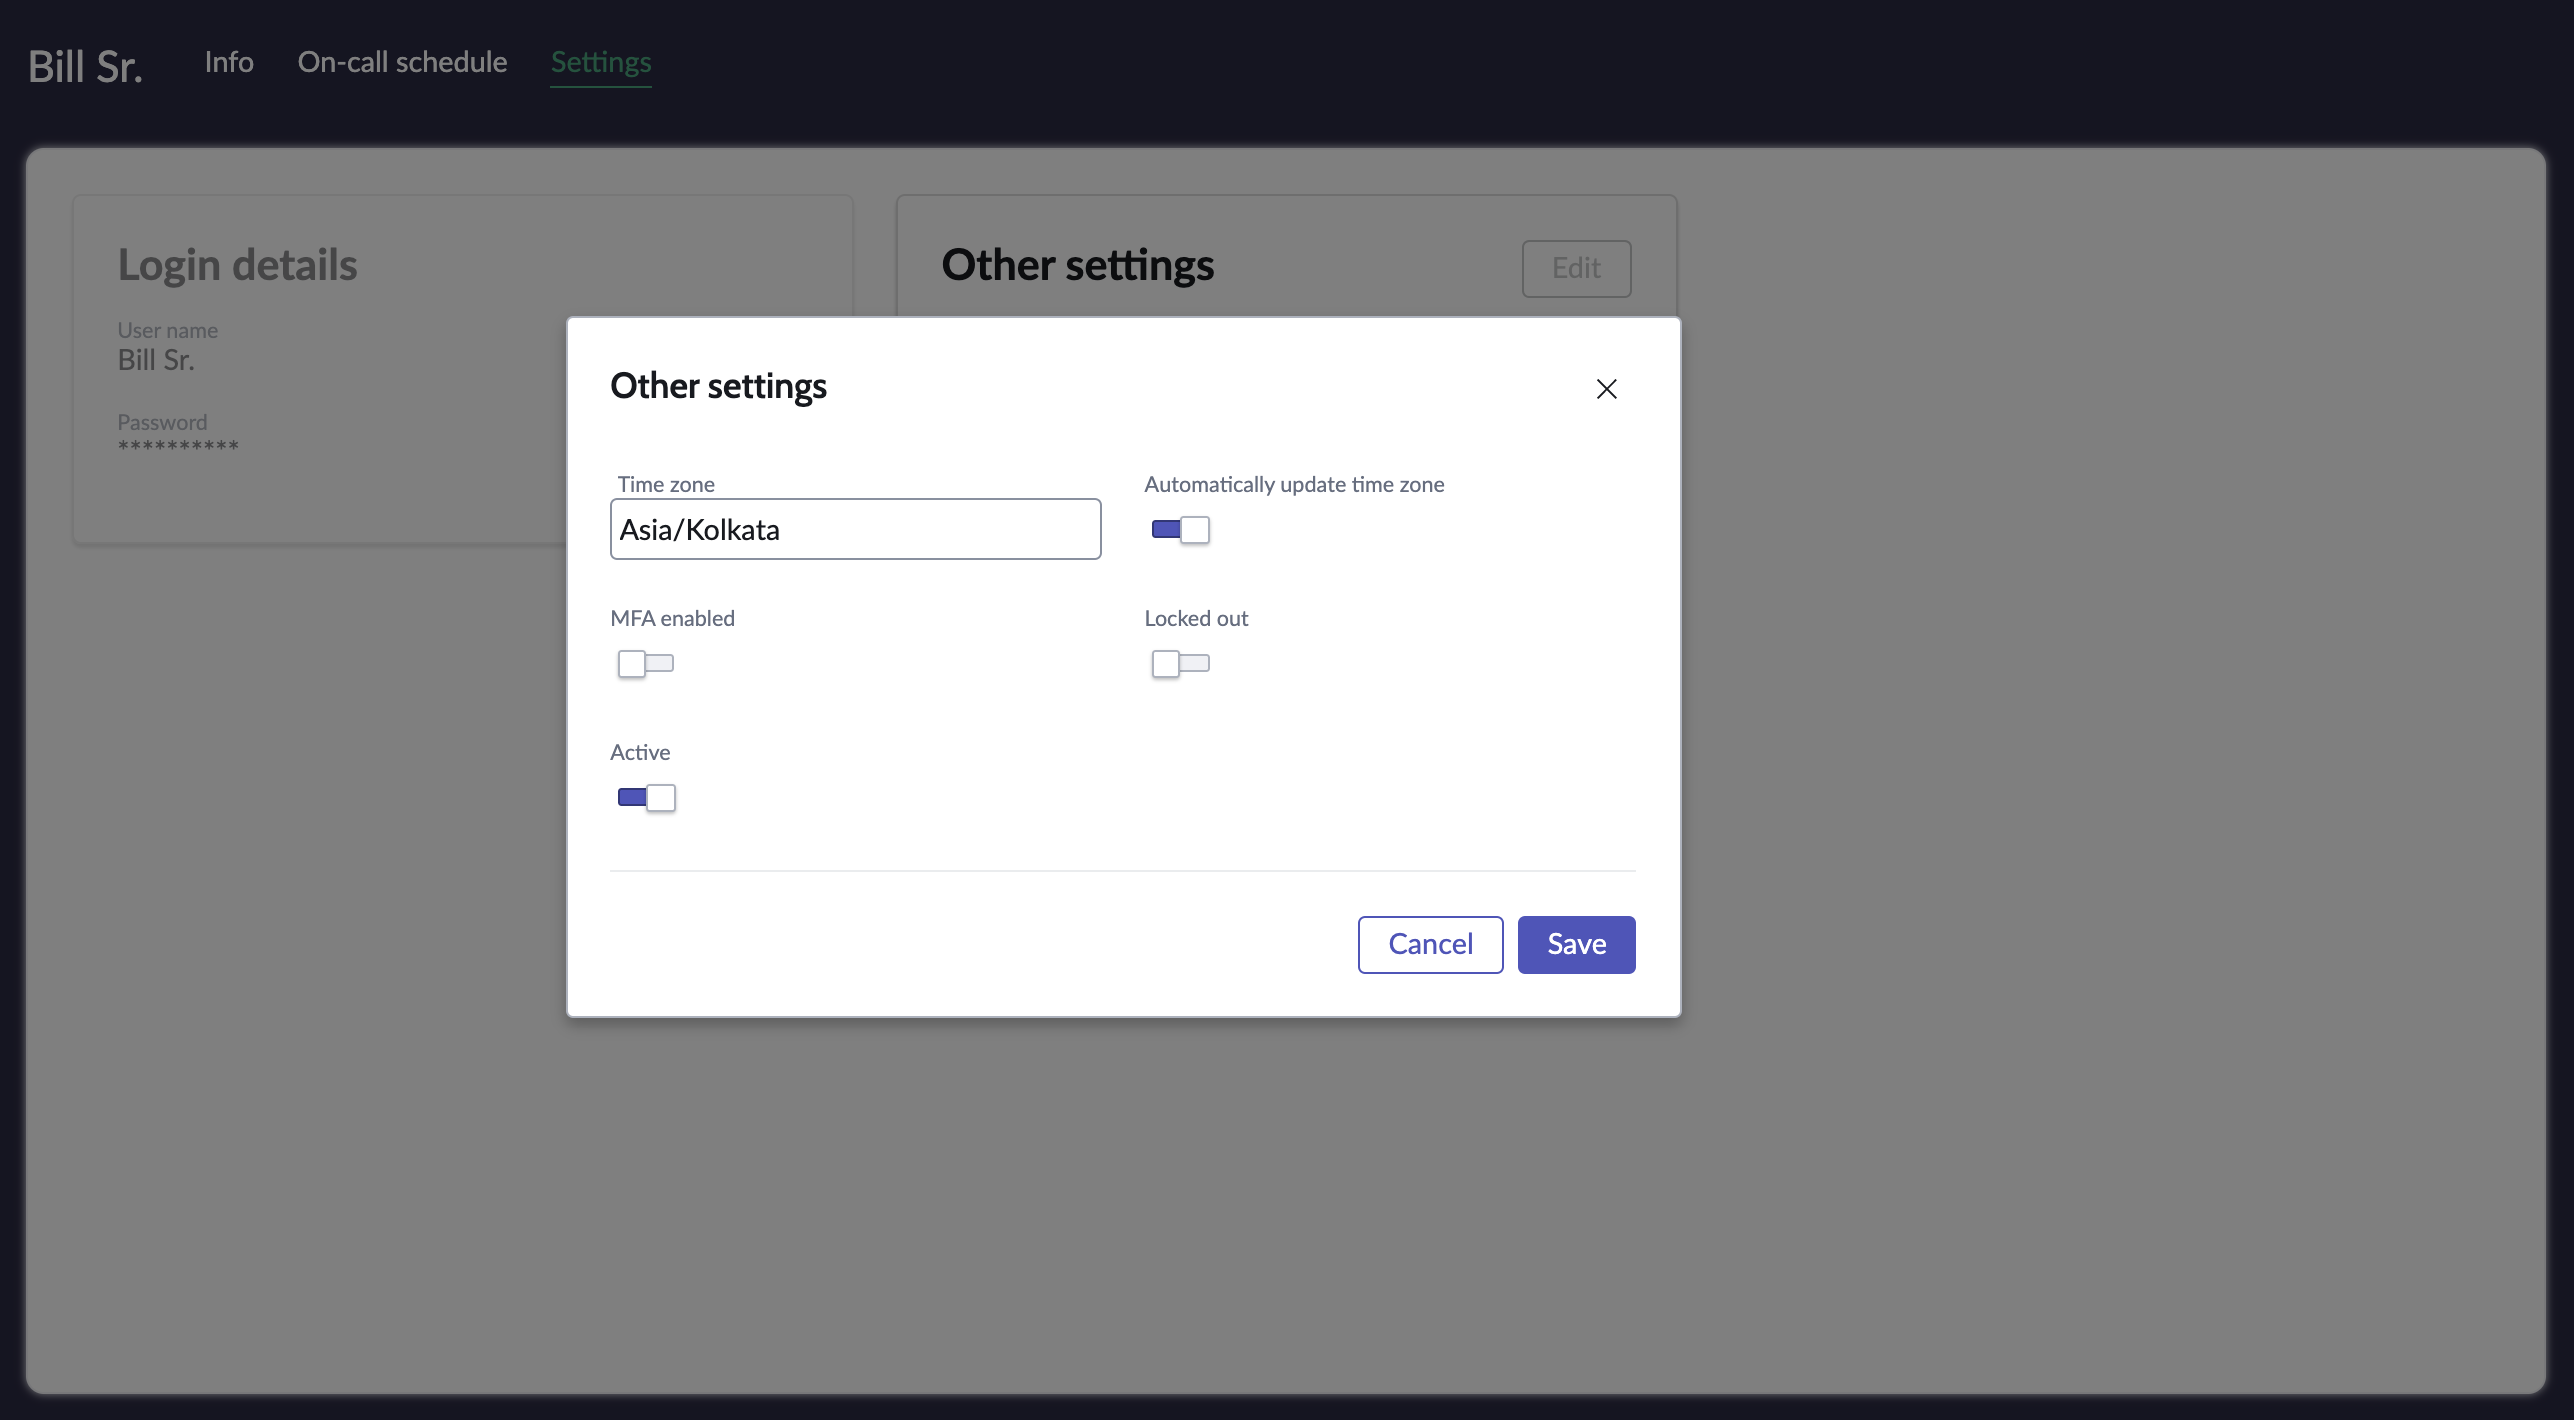 Disable the locked out field using slider control.